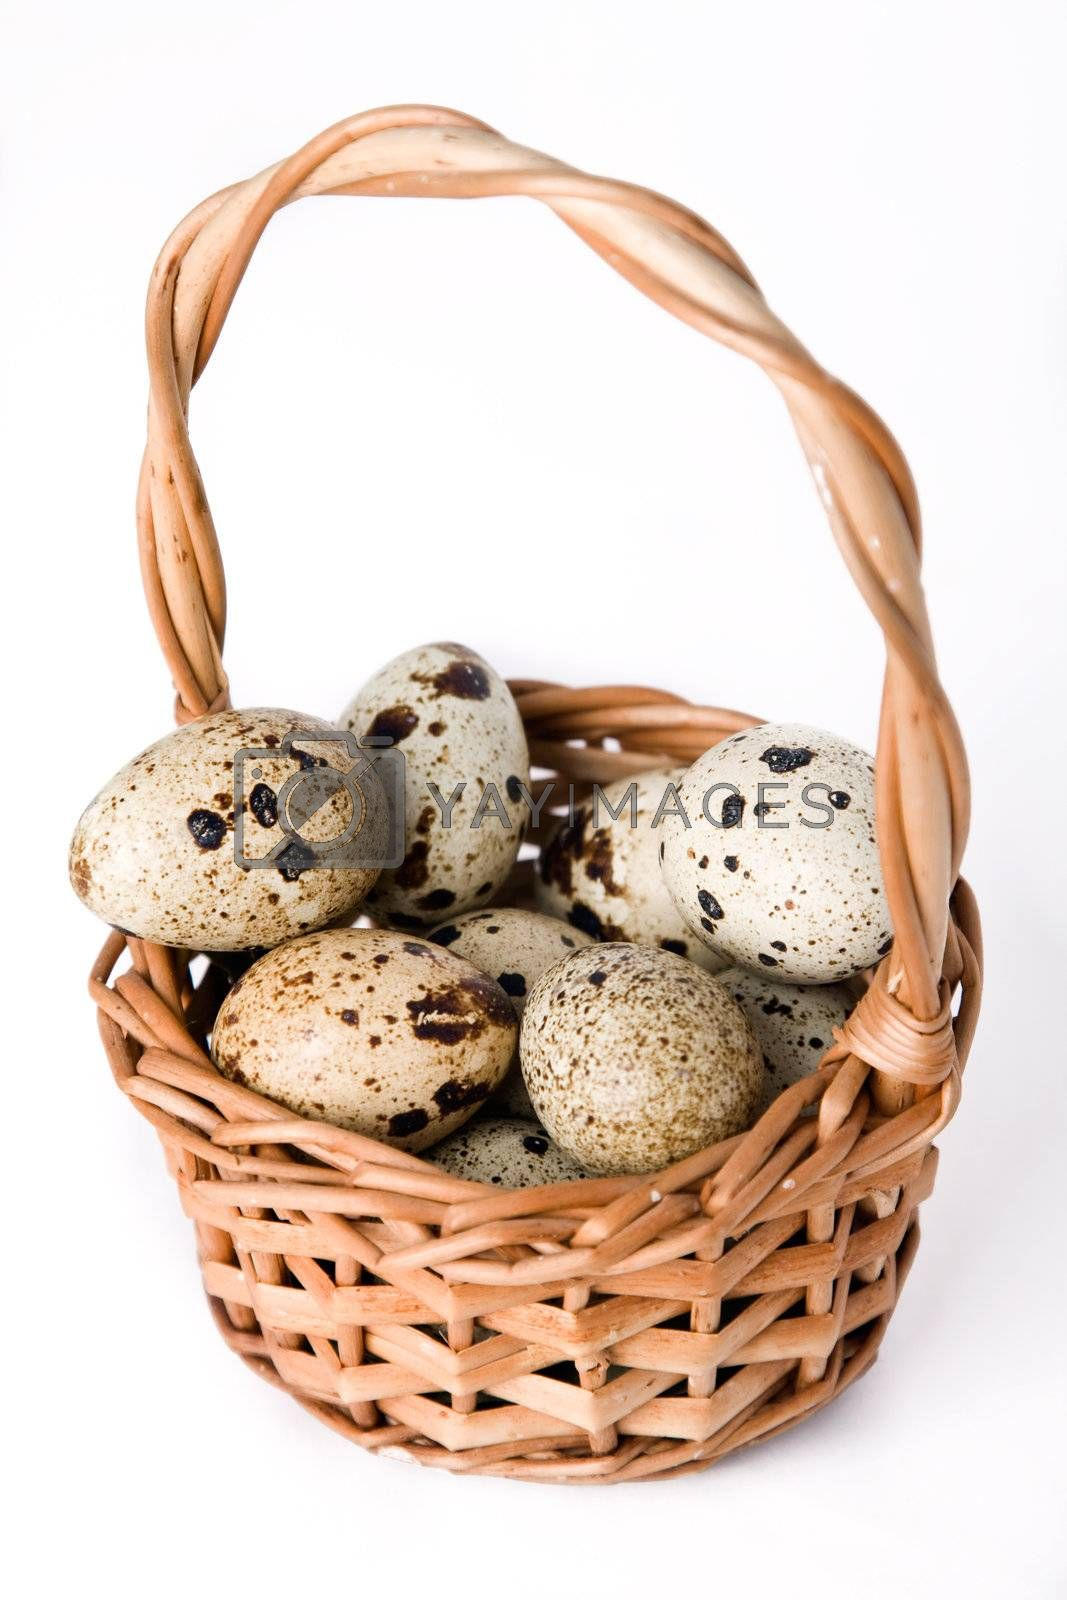 Quail eggs in basket isolated on a white background